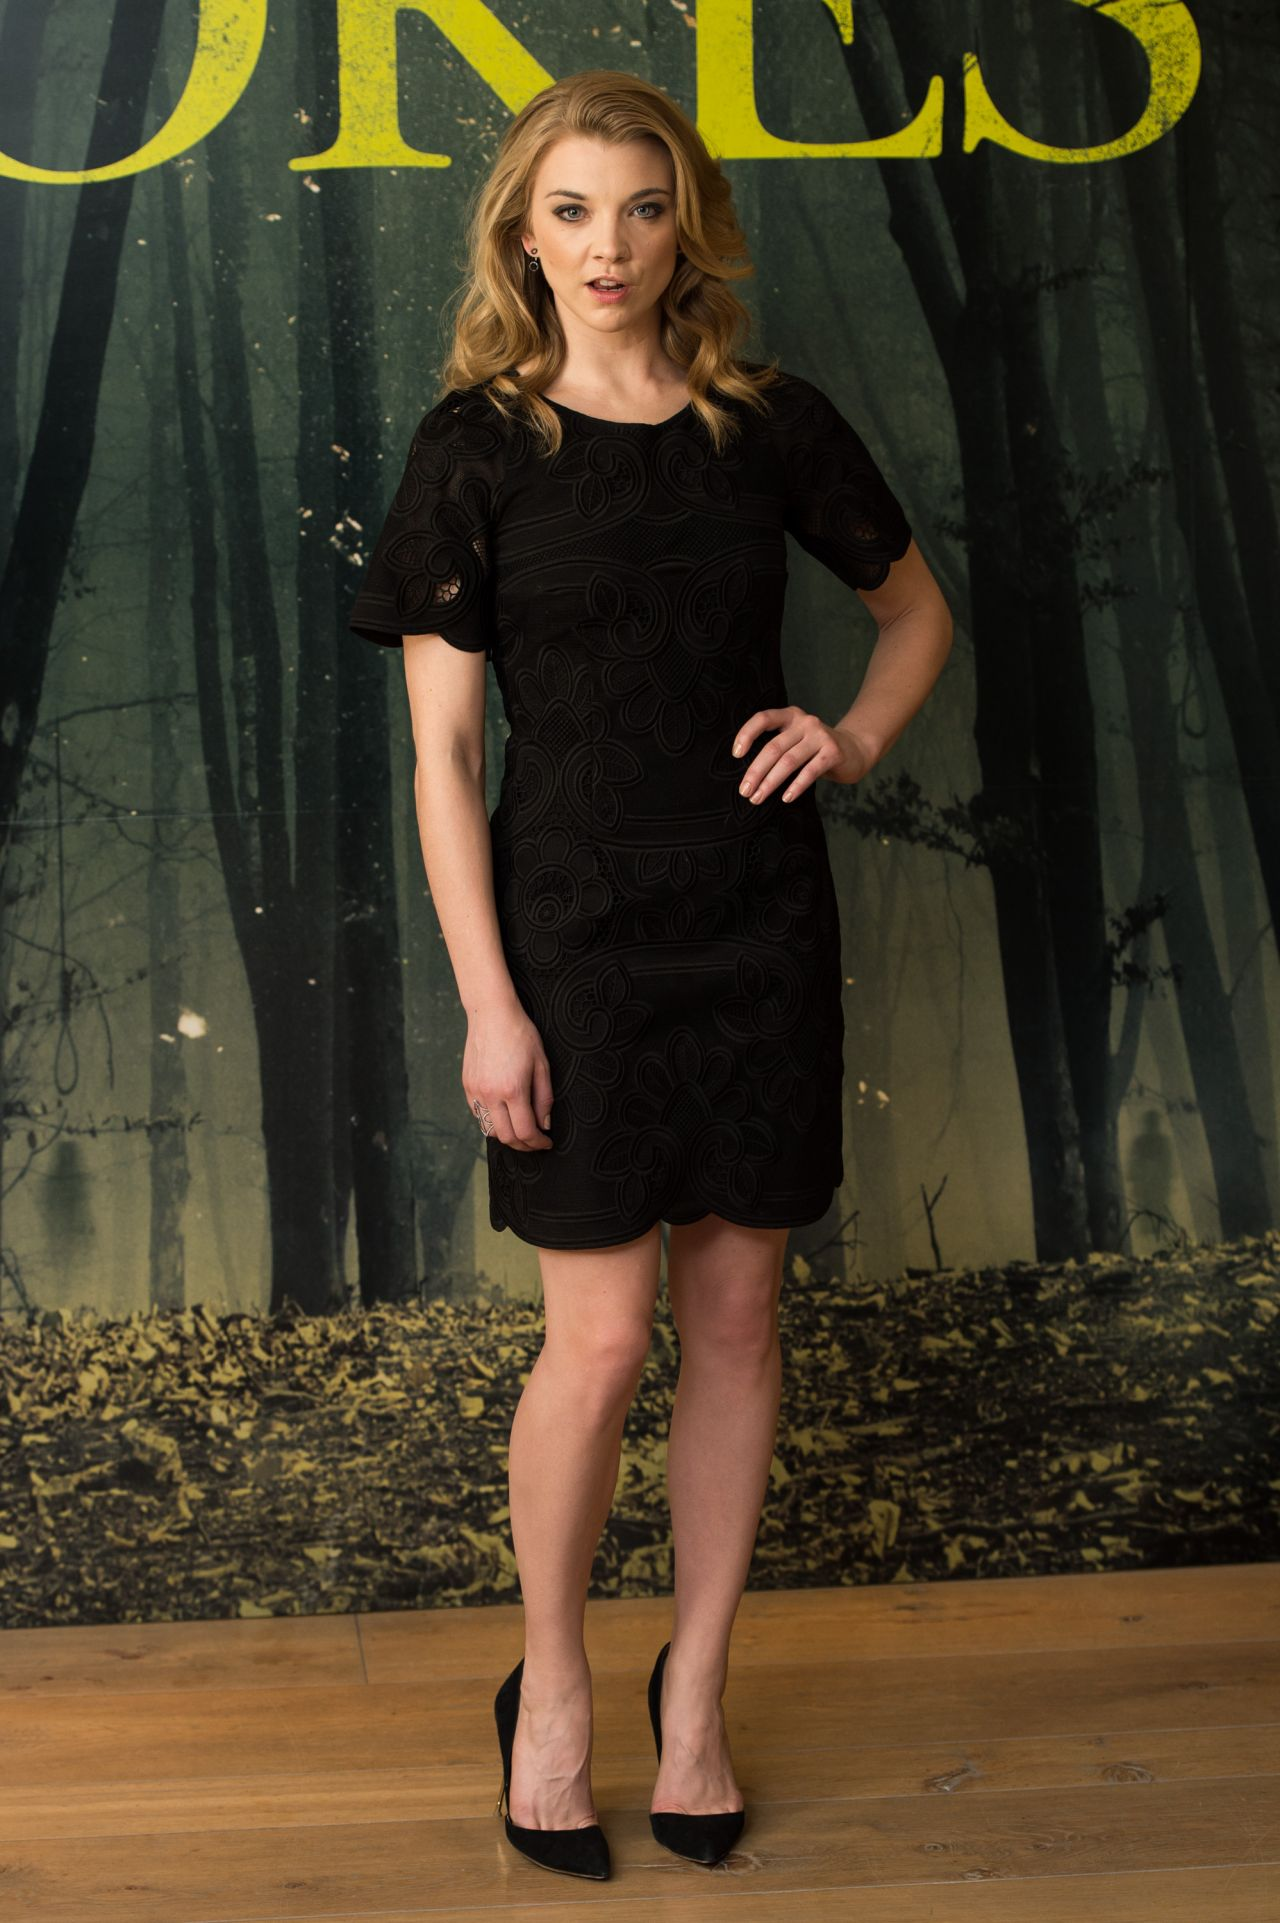 natalie-dormer-the-forest-photocall-in-london-uk-4